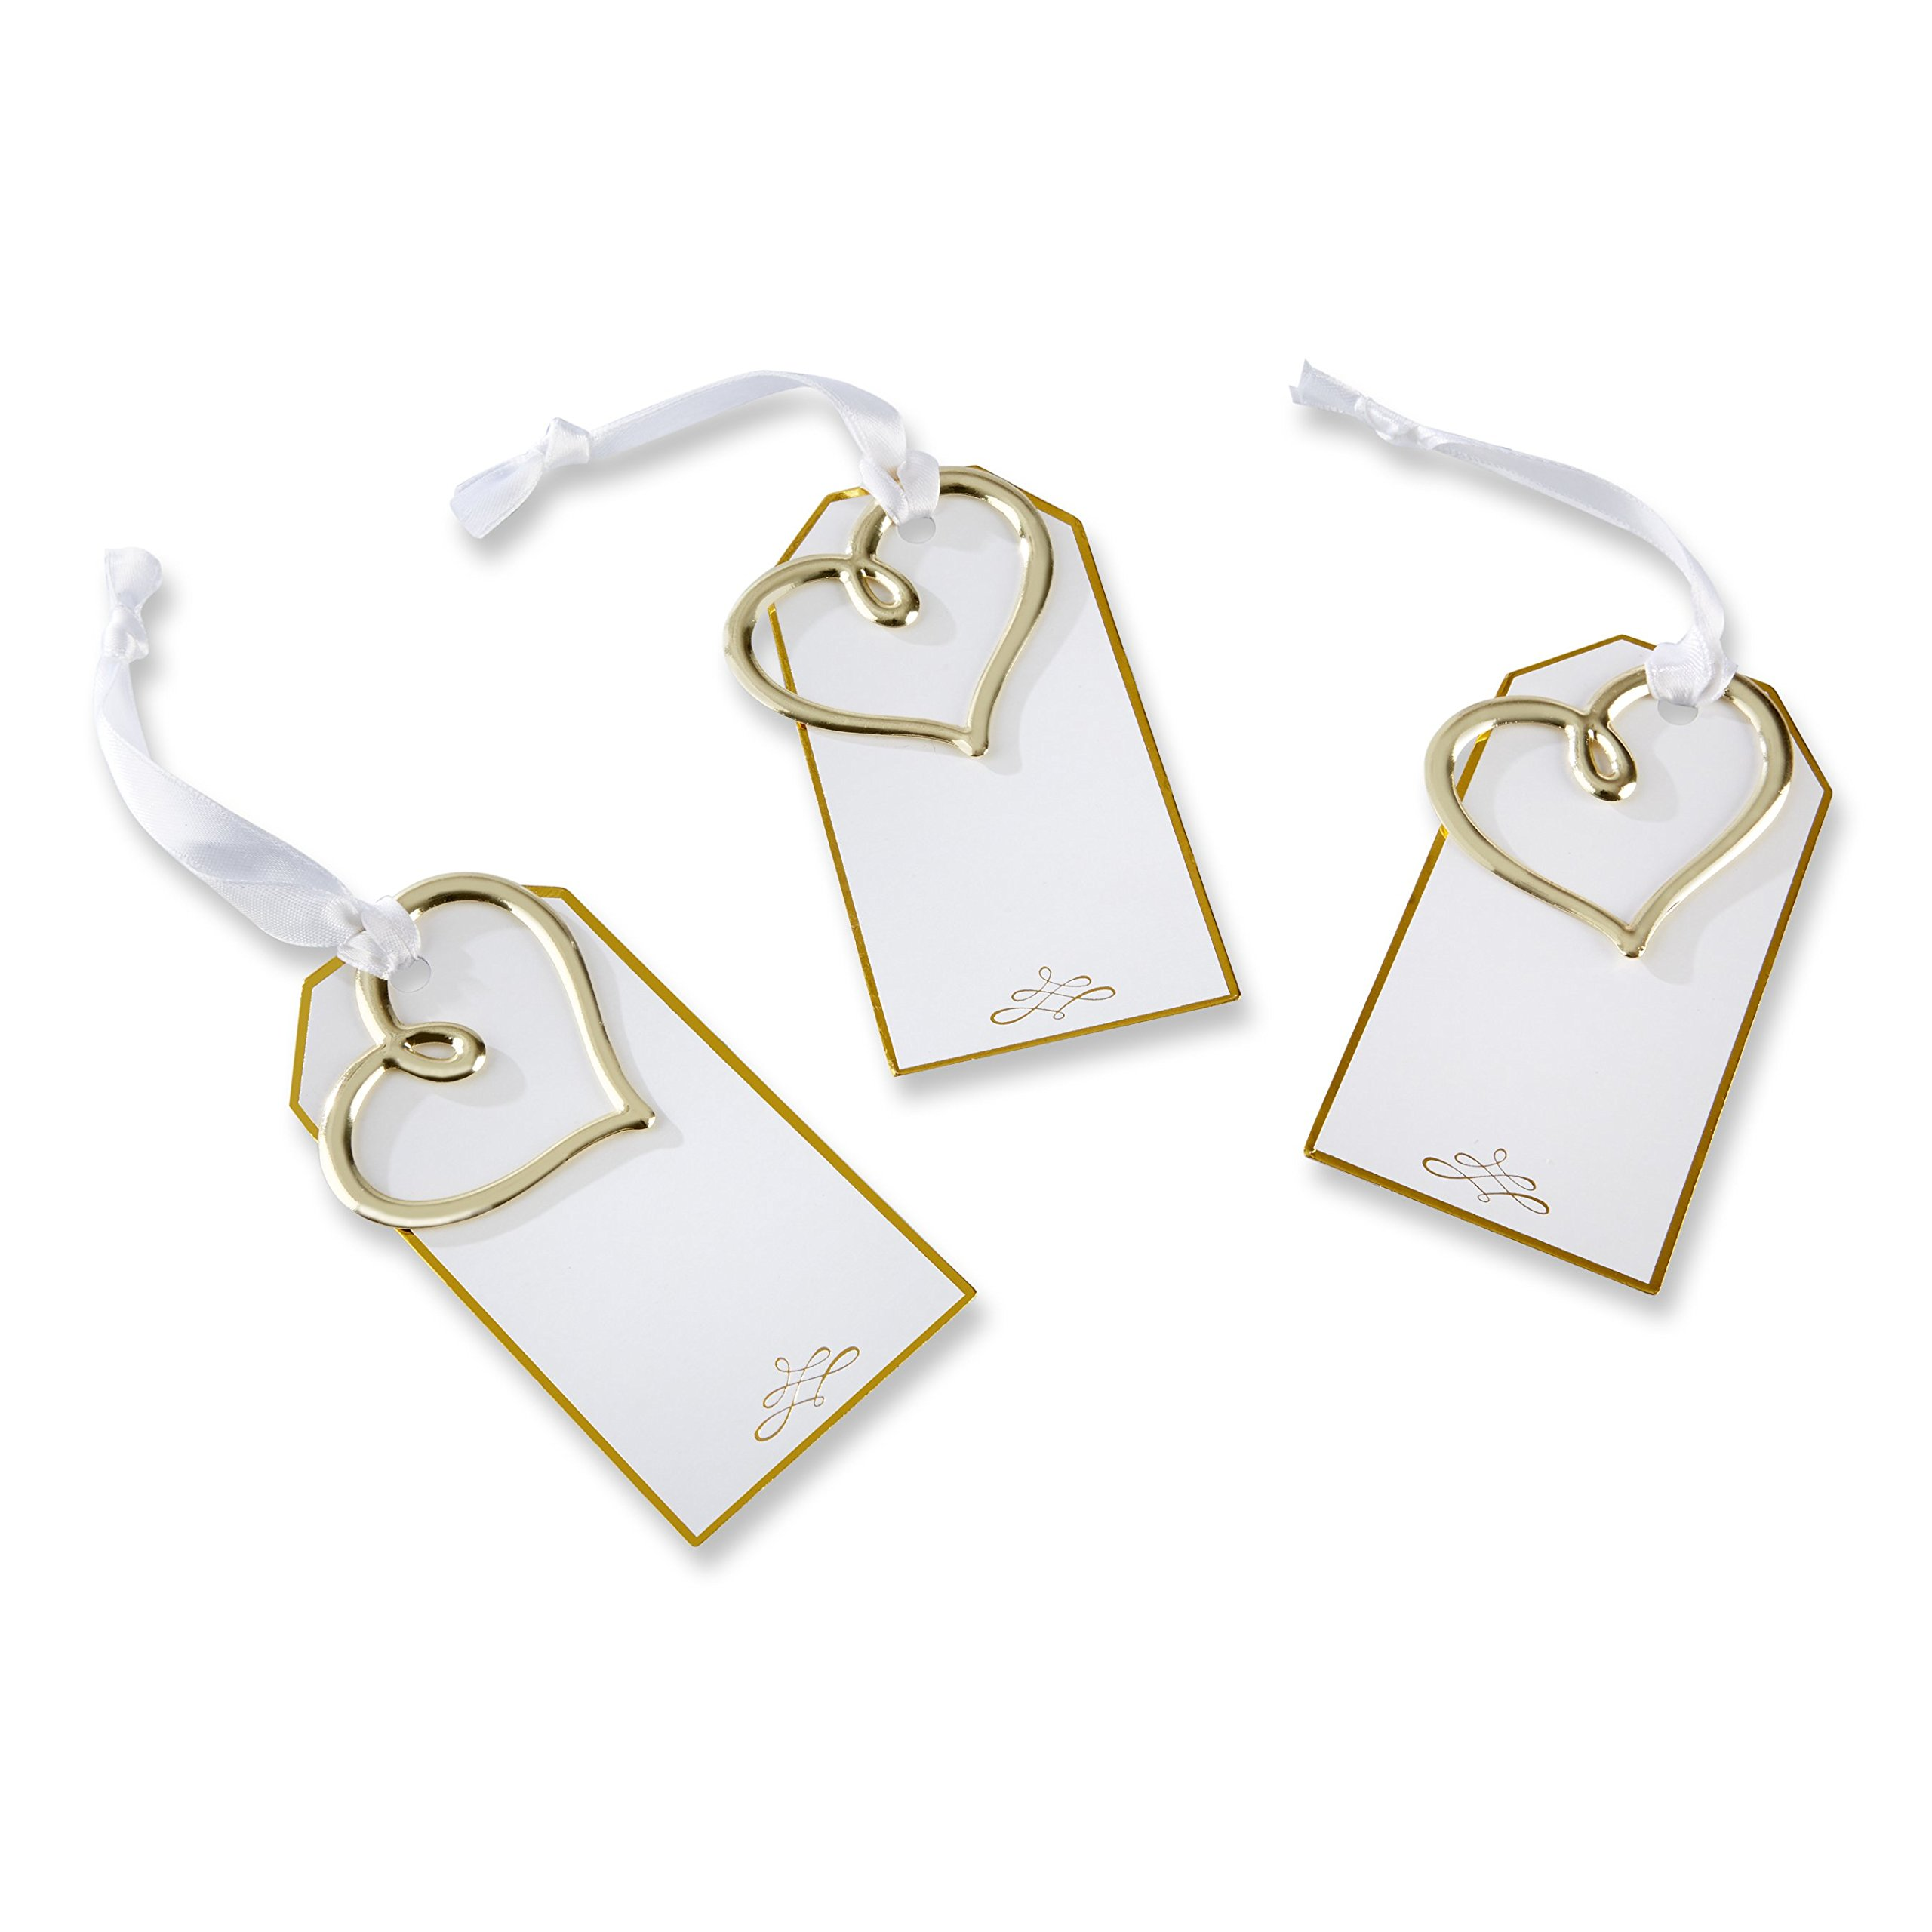 Kate Aspen Gold Heart Escort Card (Set of 12) Gift Tags, Gold and White